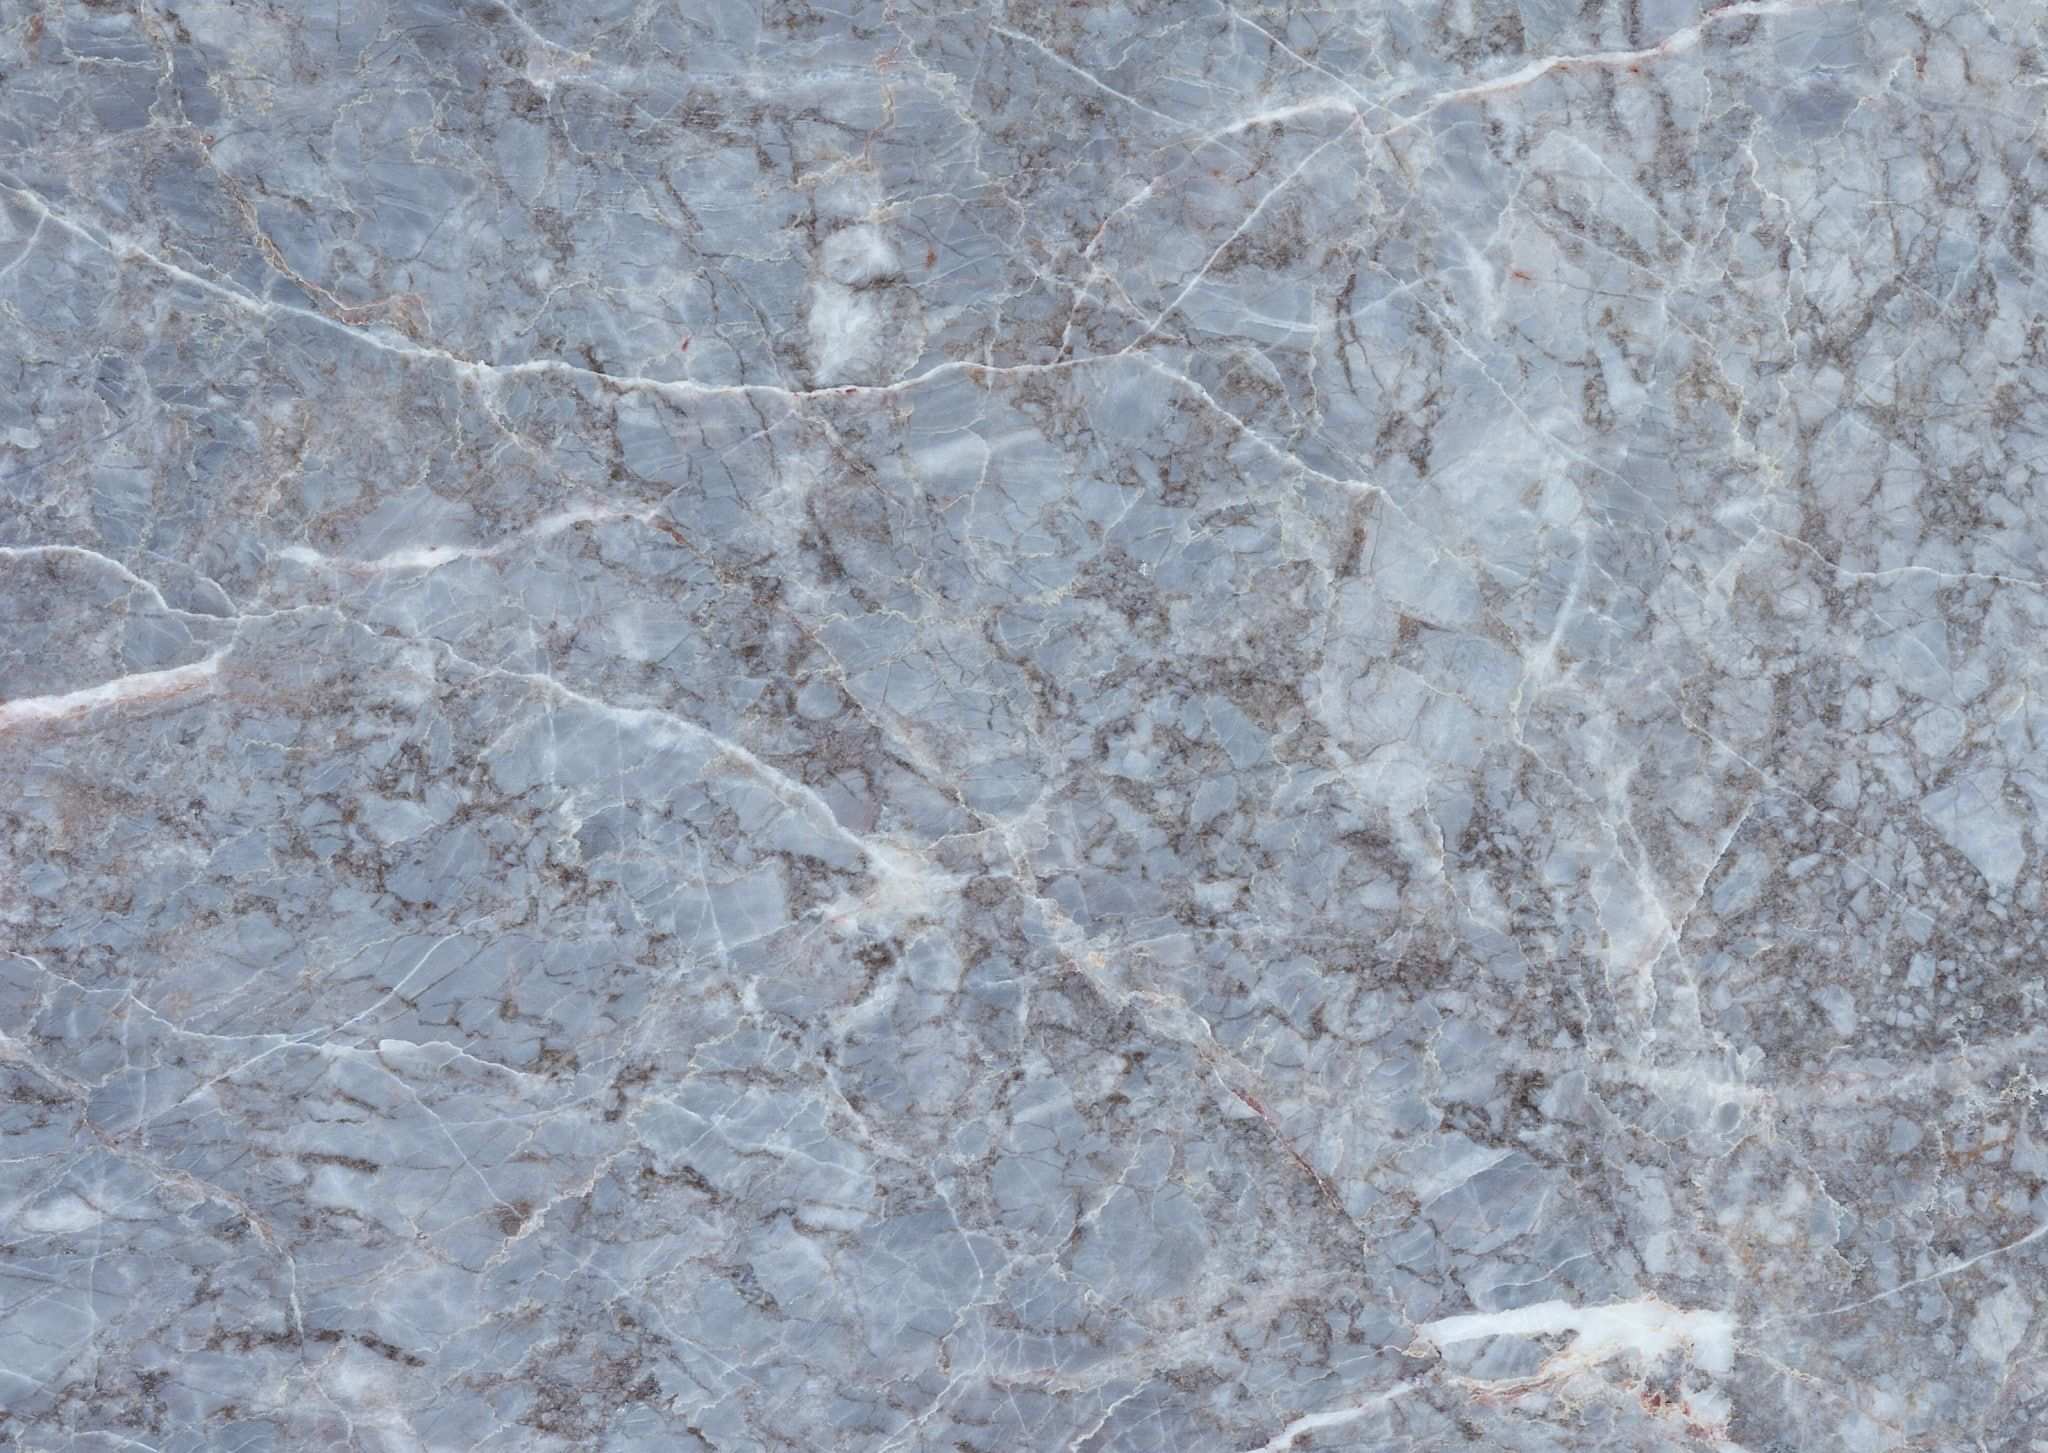 Marble Backgrounds Images 1080p Wallpaper Hdwallpaper Desktop Marble Background Photo Texture Background Tile